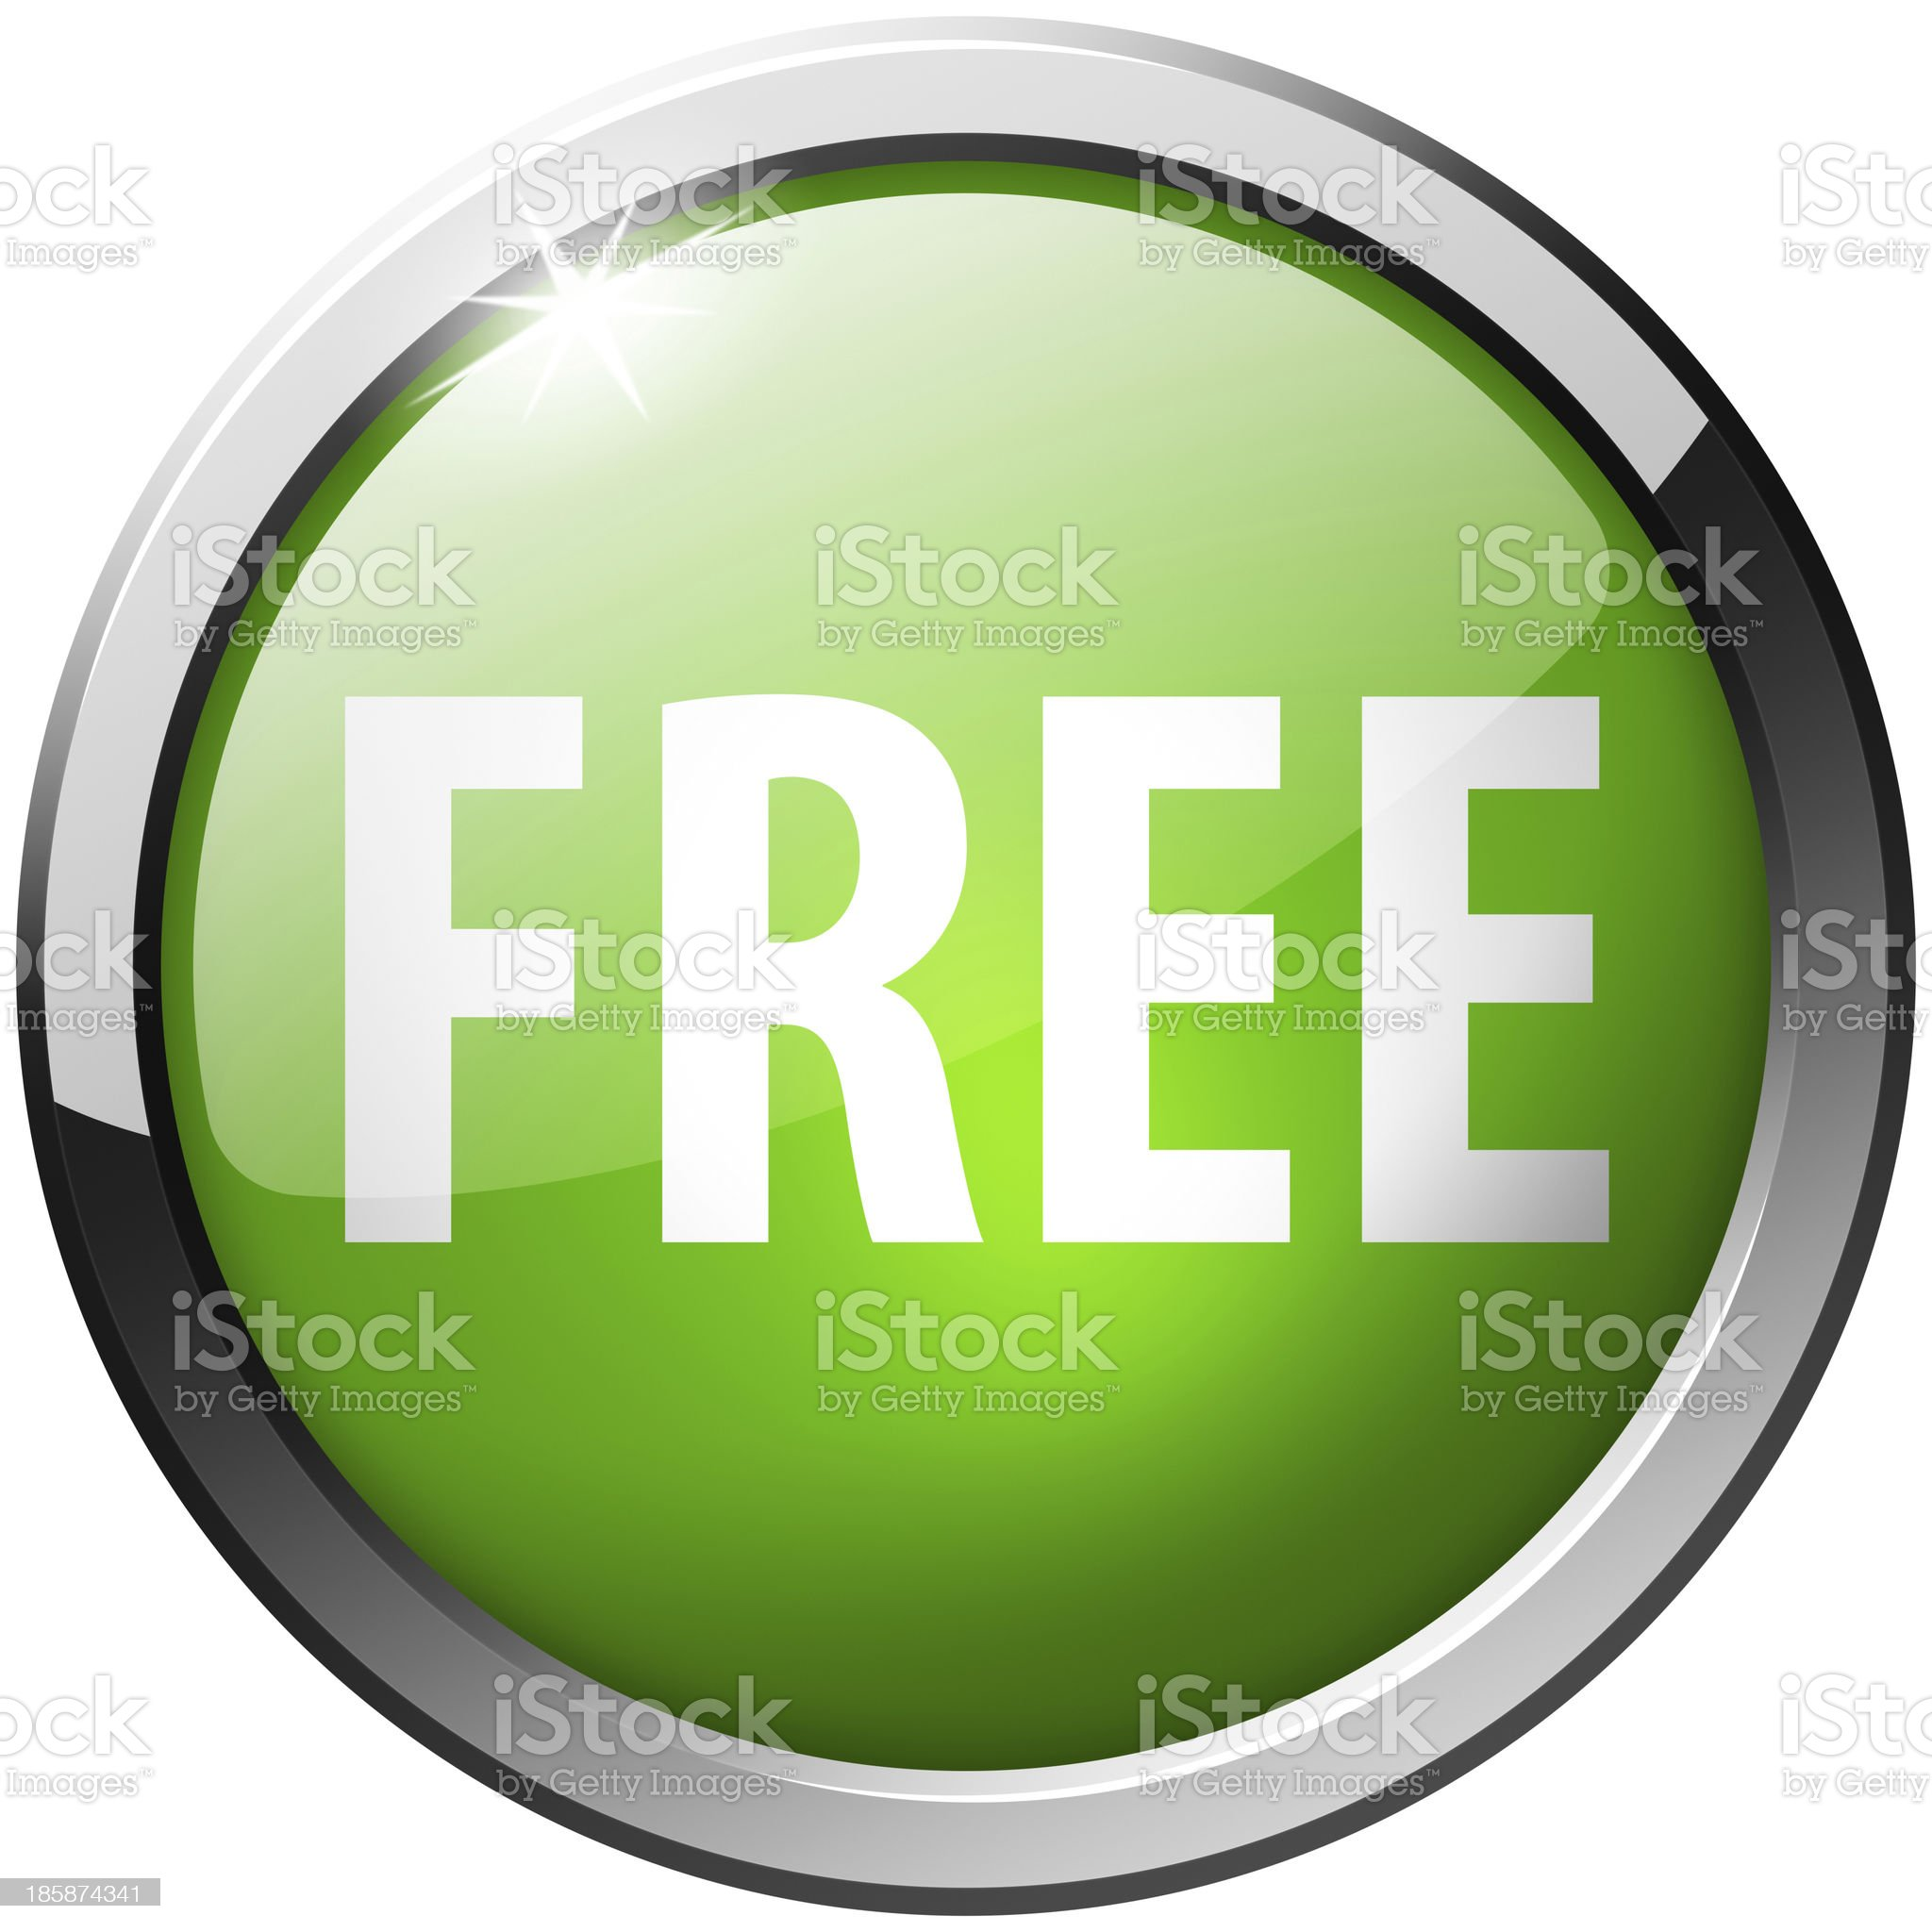 free shiny green button royalty-free stock vector art